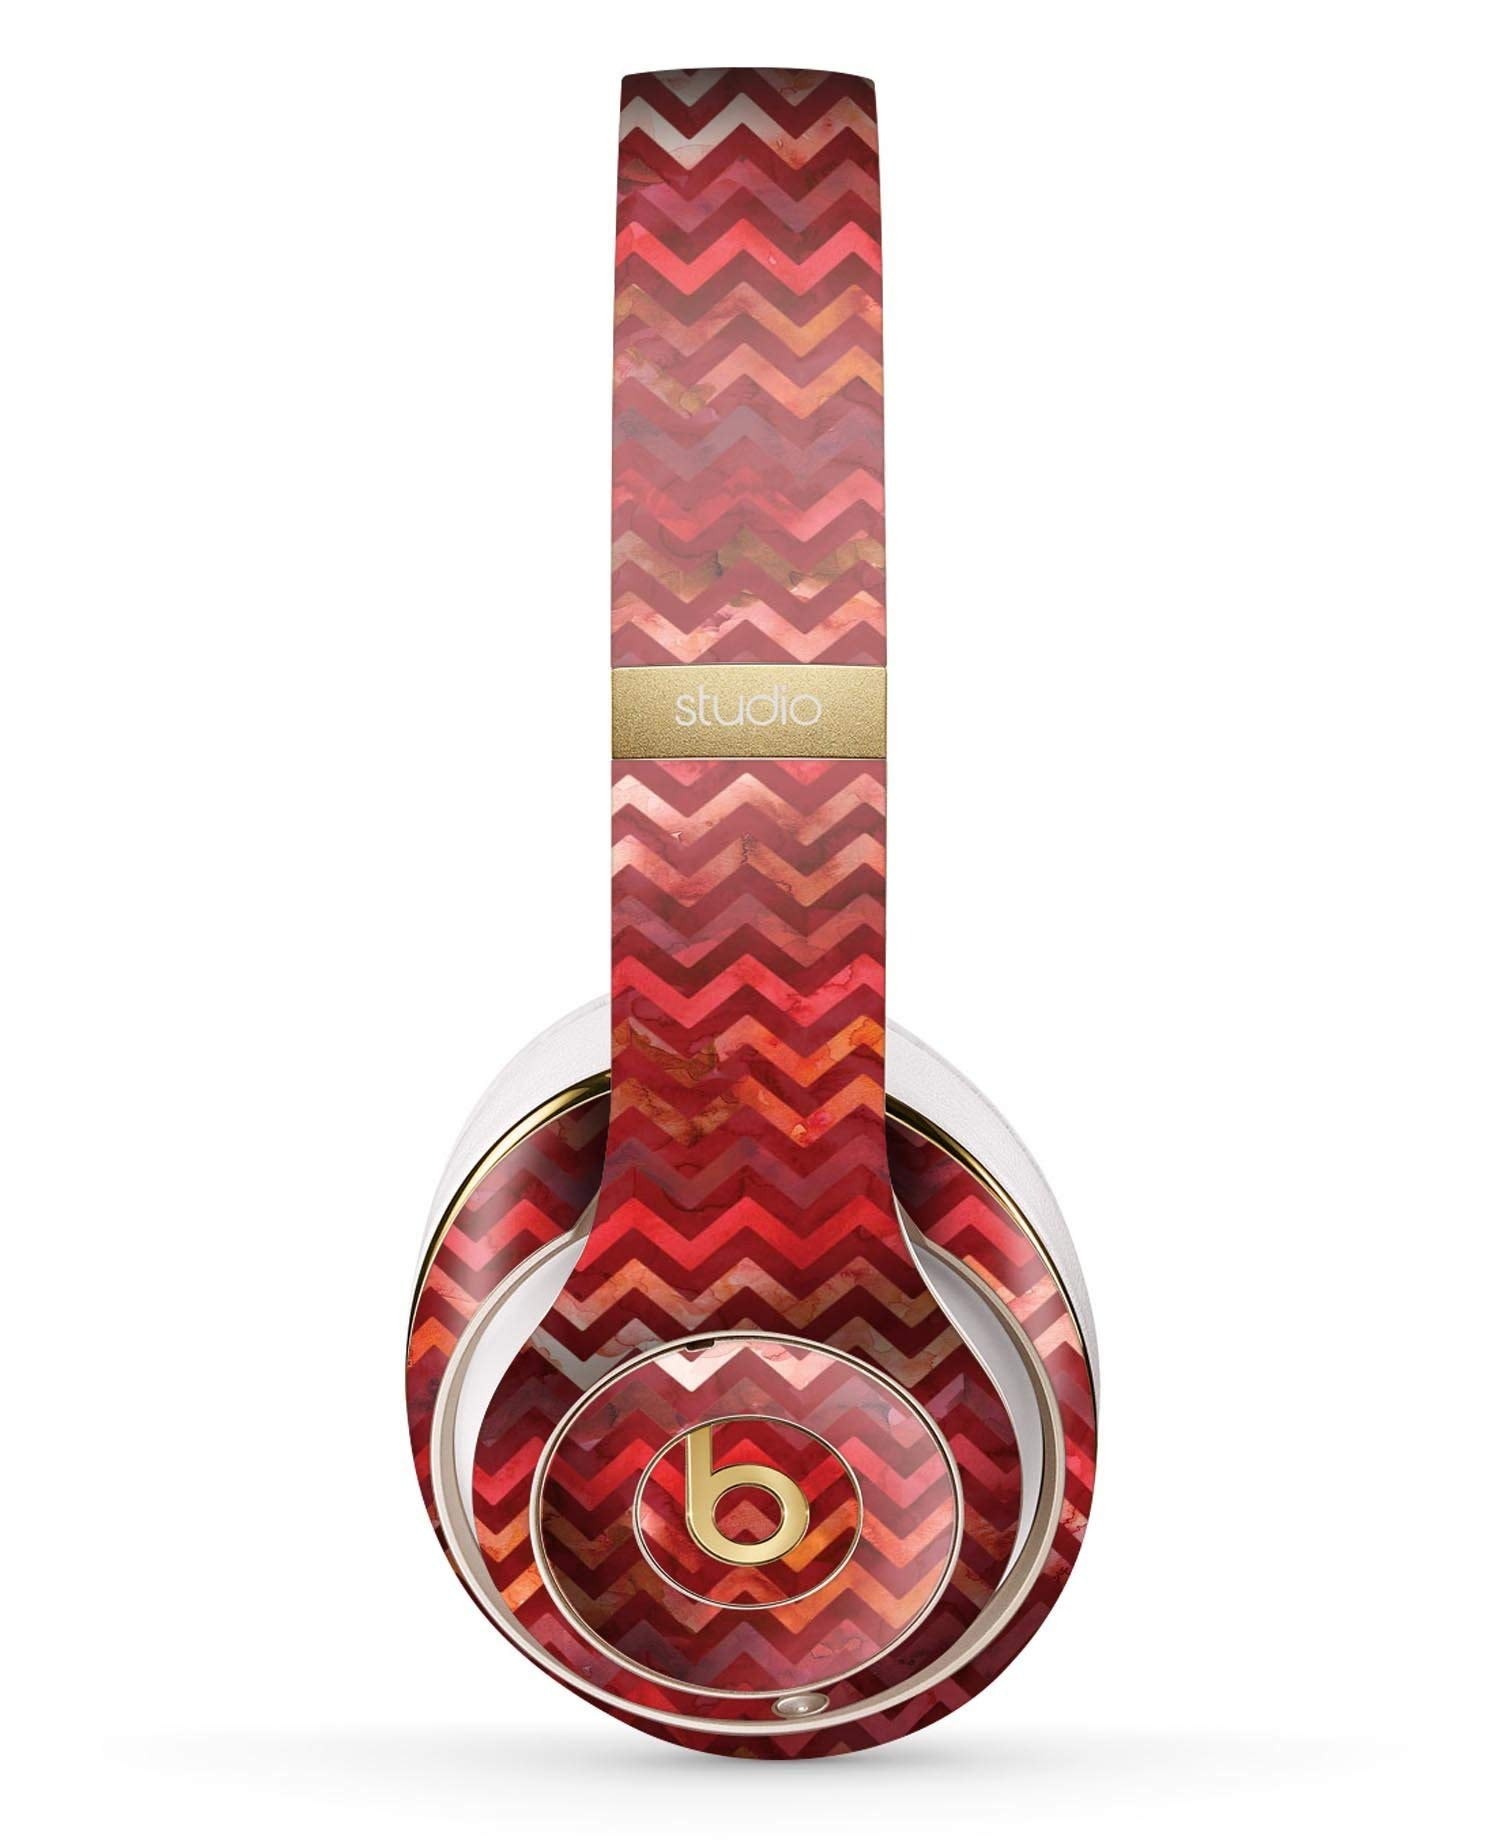 Red Multi Watercolor Chevron Design Skinz Full-Body Premium Authentic Skin Kit for The Beats by Dre Studio 2 or 3 Remastered Wireless Headphones Ultra-Thin Protective Decal Wrap